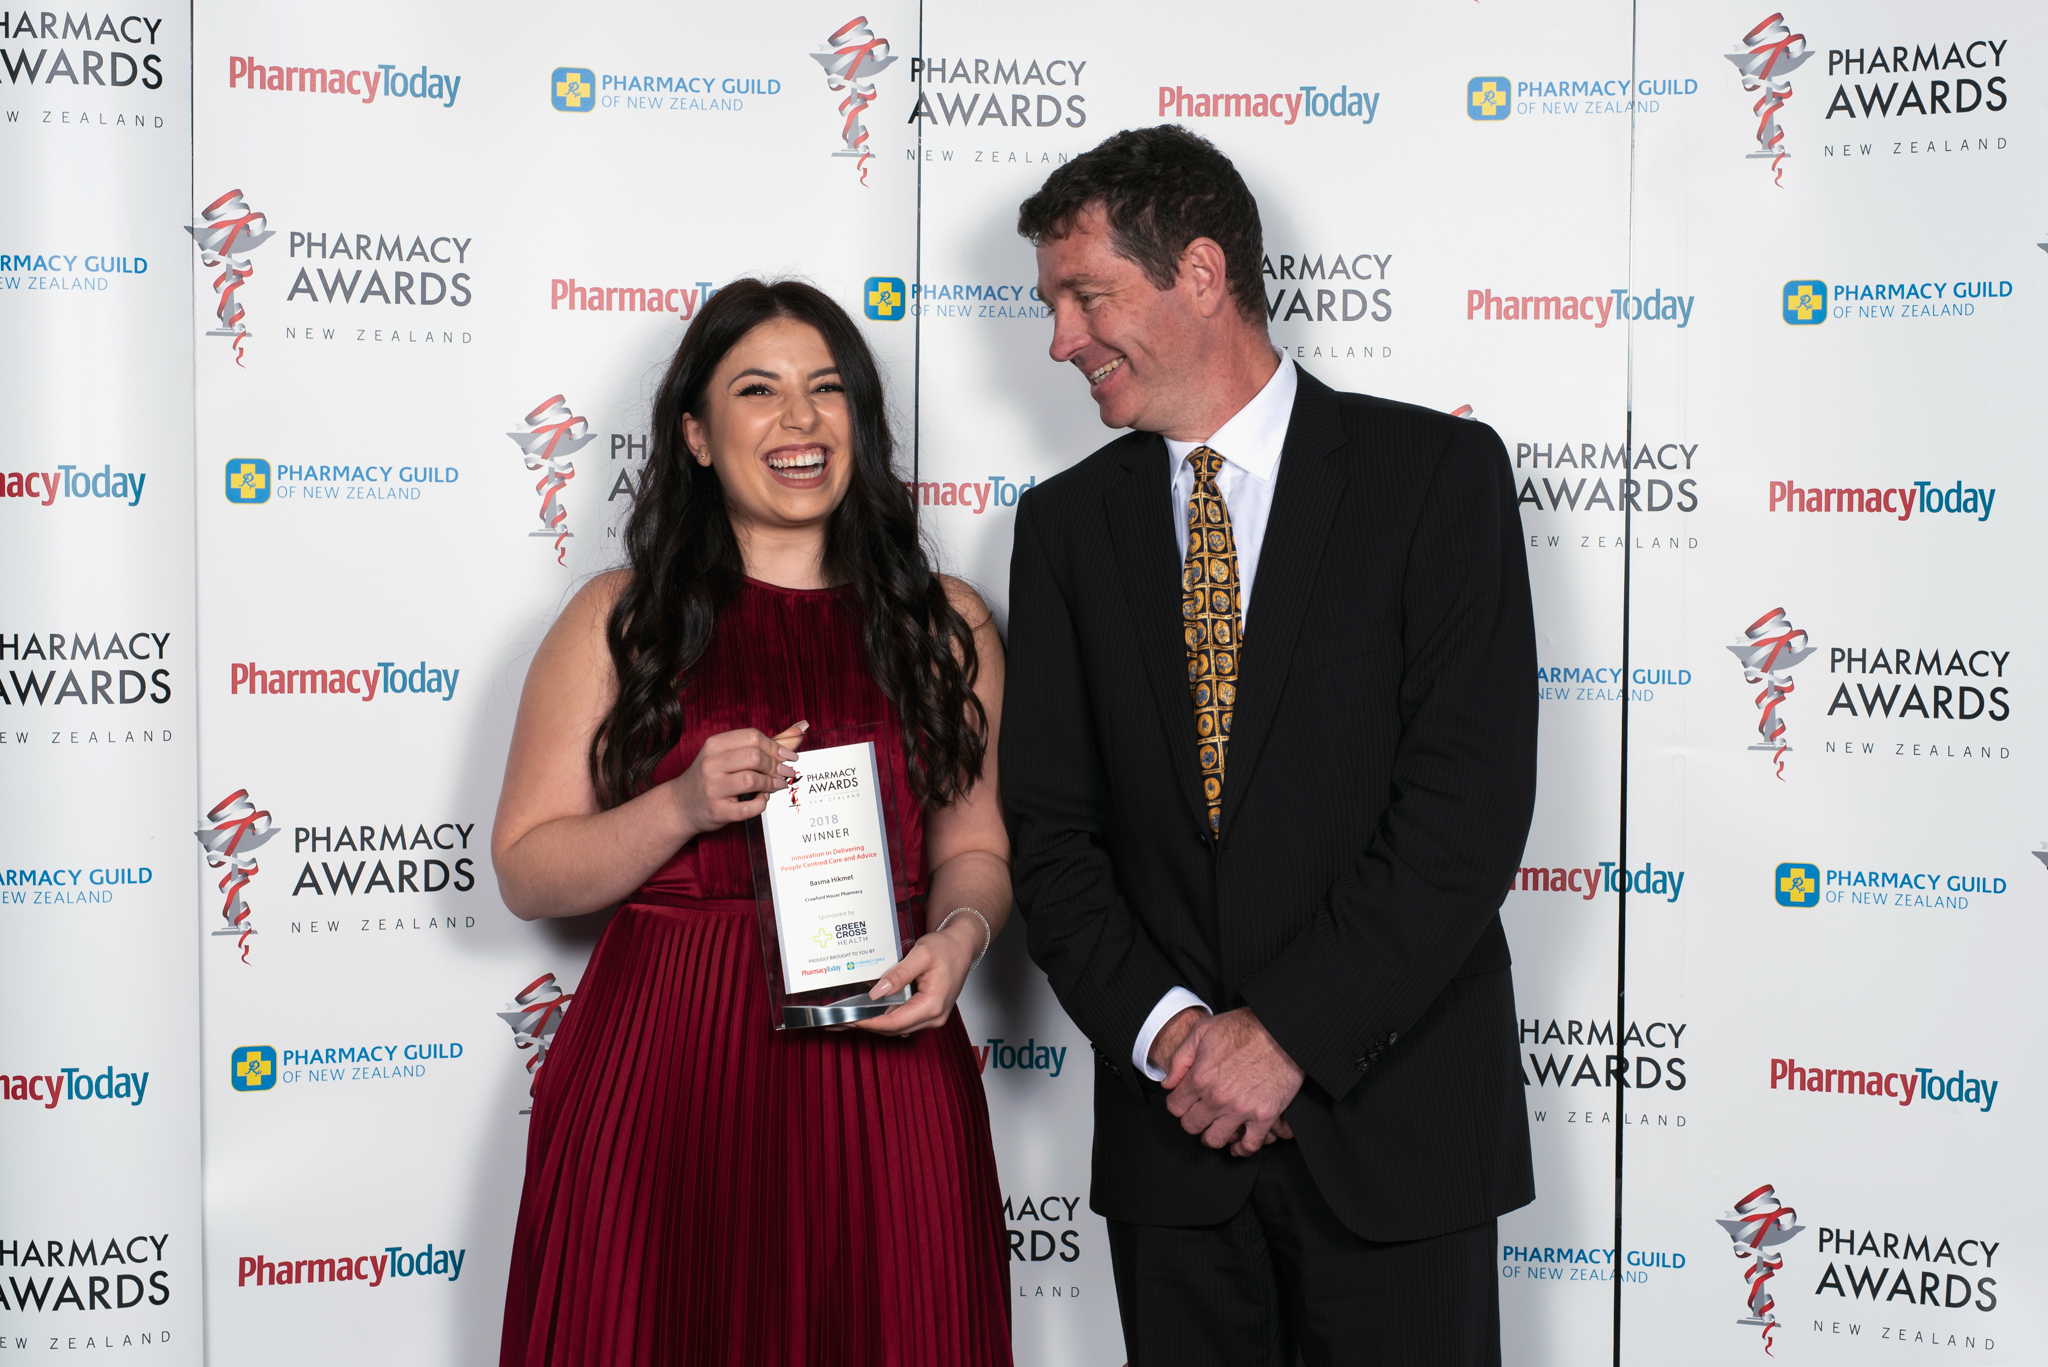 Pharmacy-Awards-2018__0JC9099_lowres